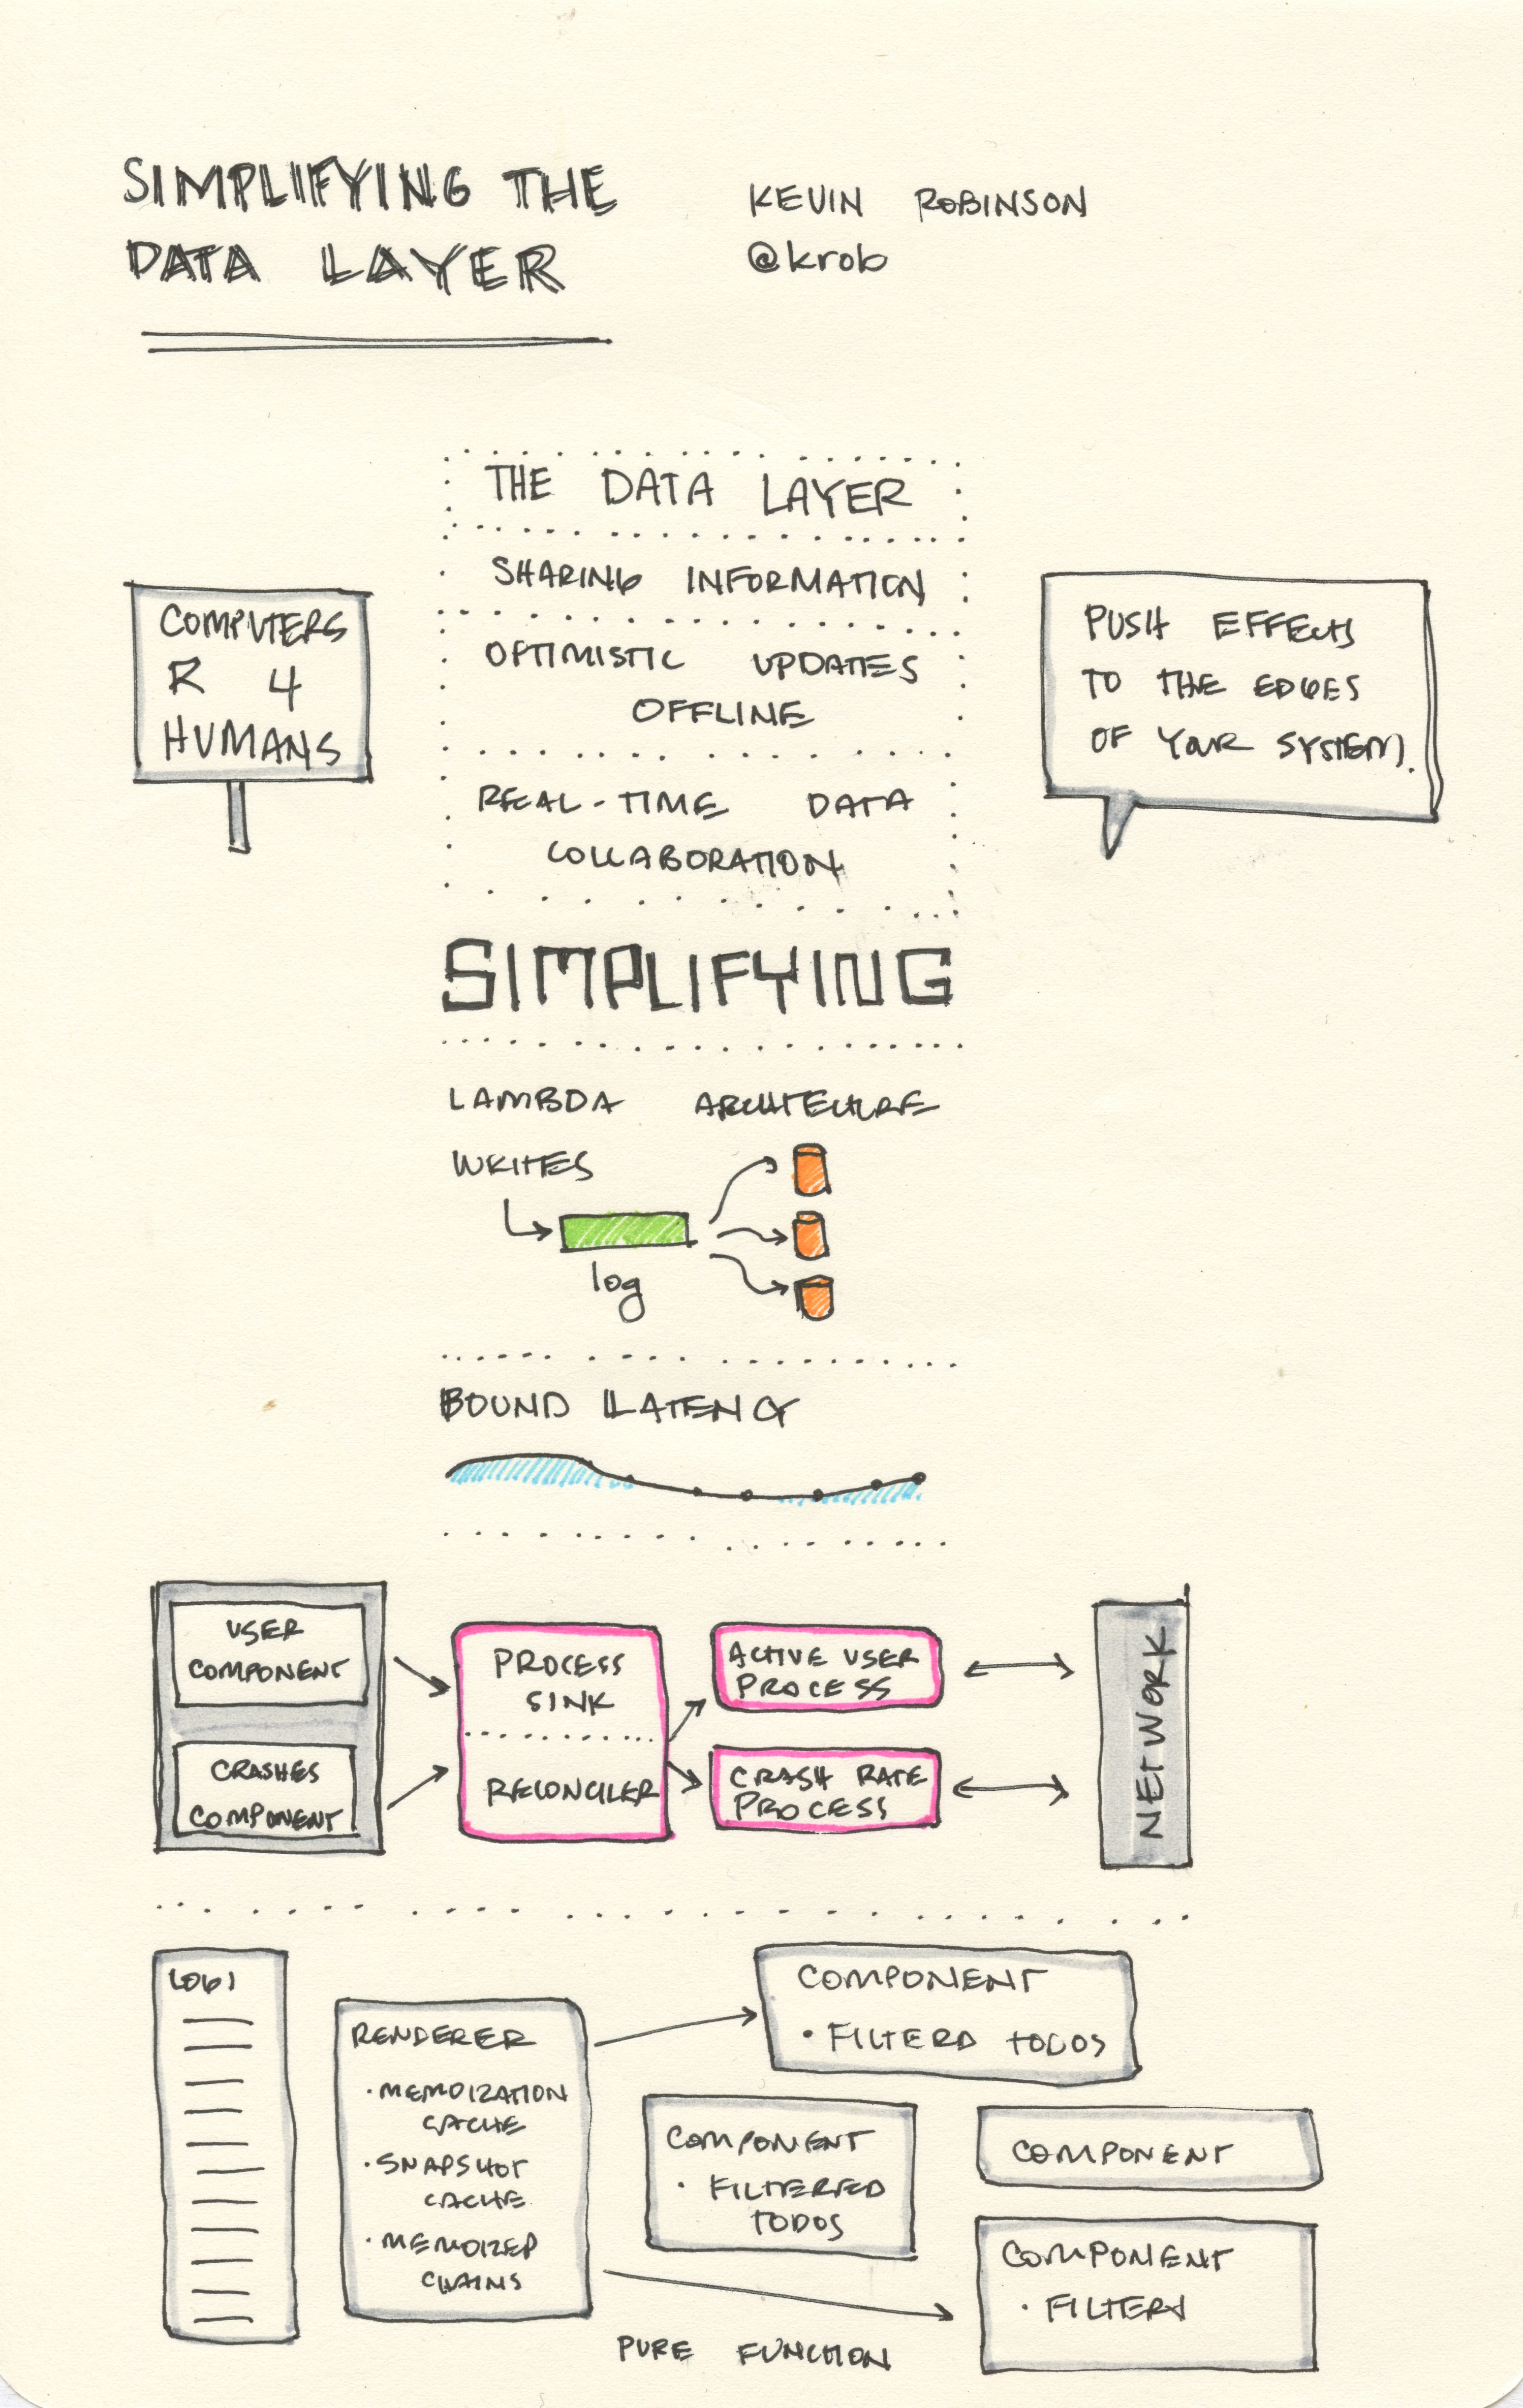 2015_react-europe_13_simplifying-the-data-layer_kevin-robinson_@krob.jpeg